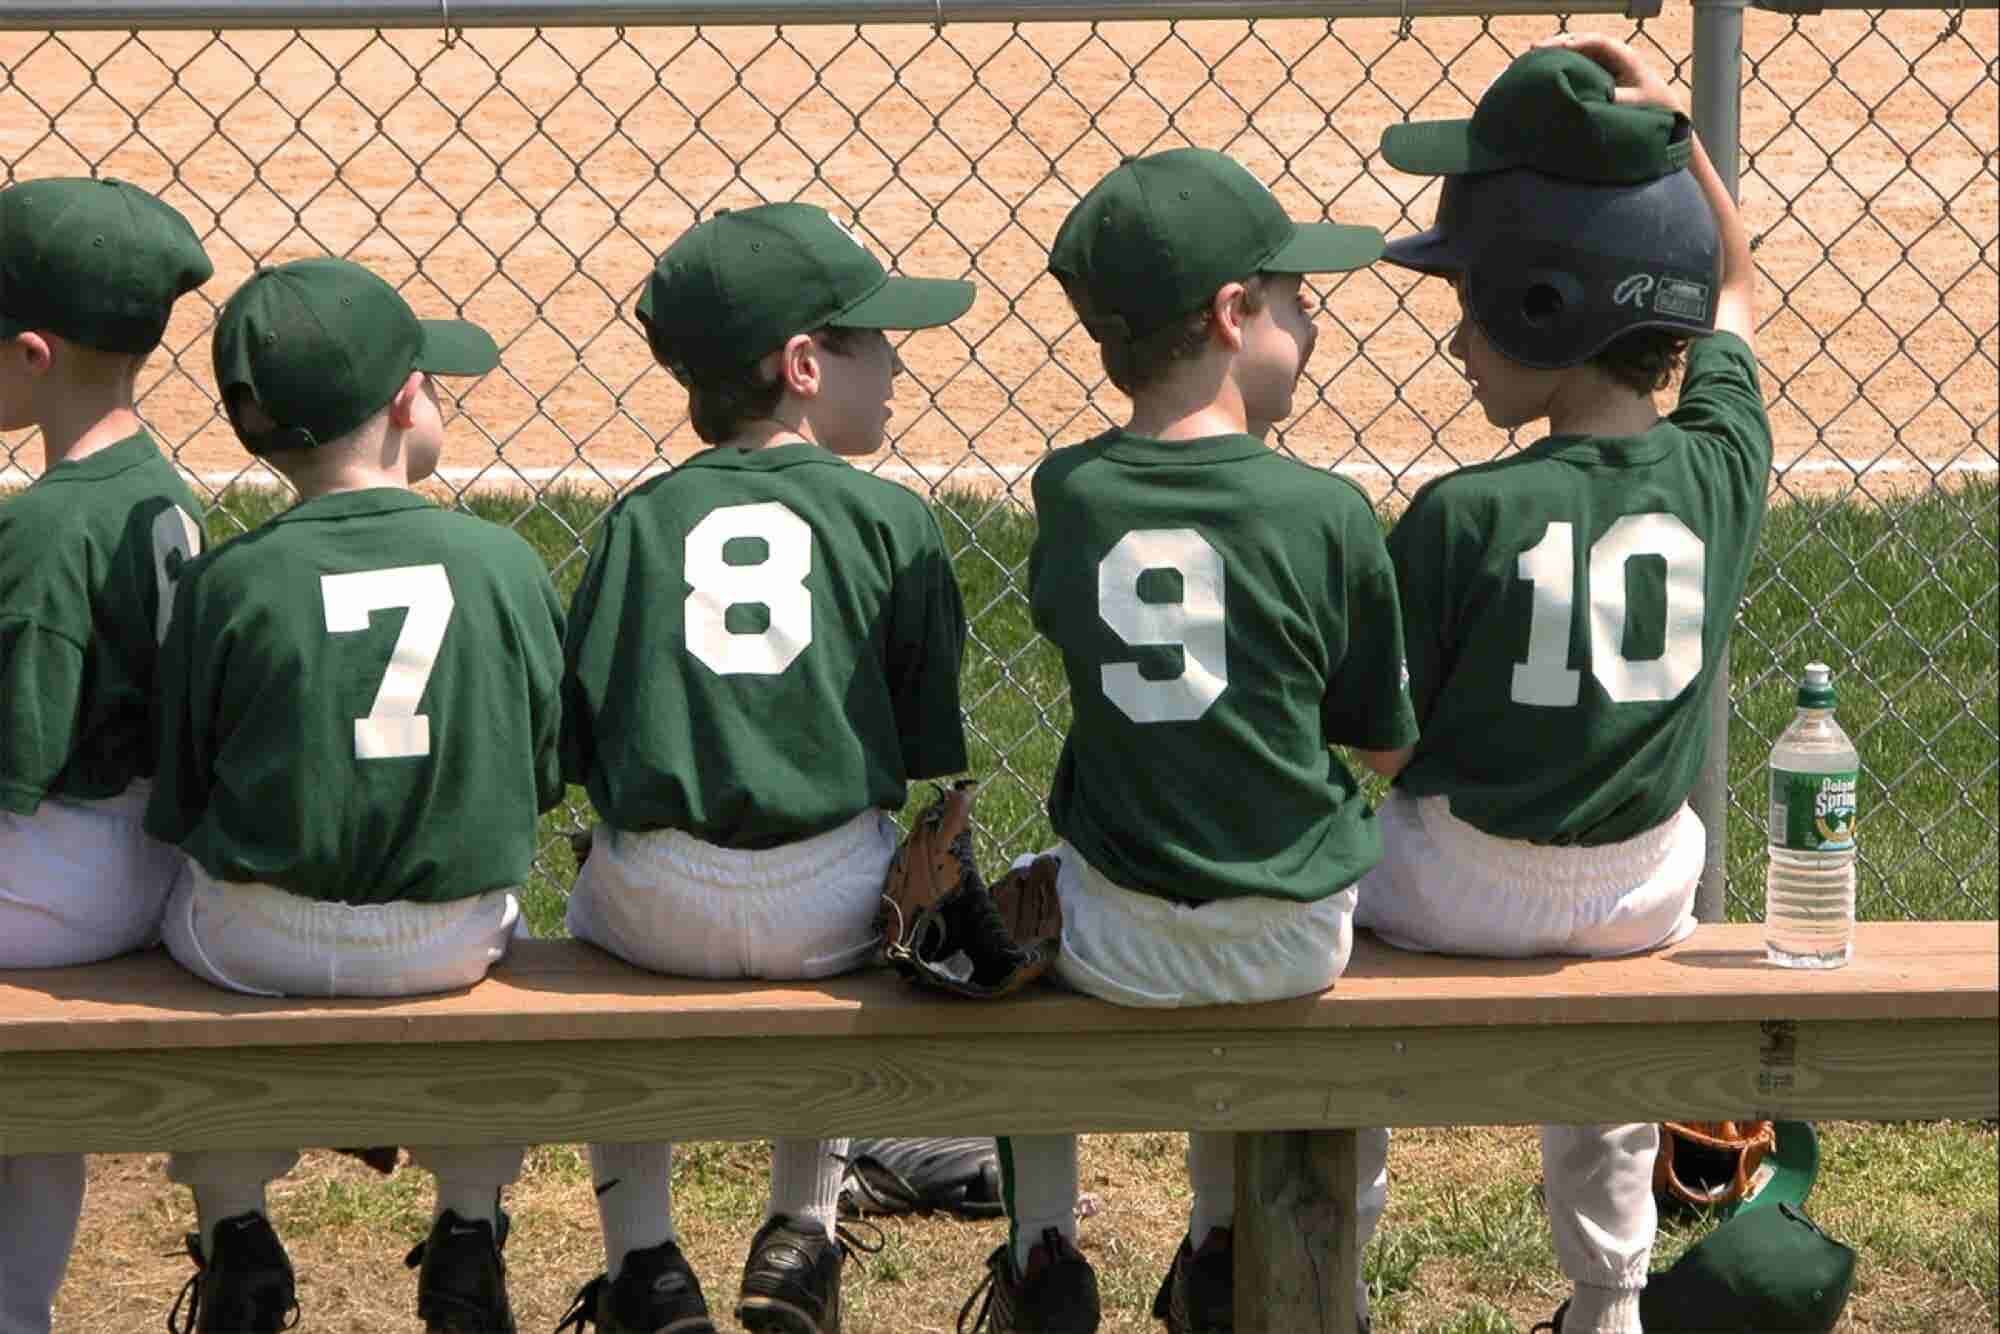 11 Sports Businesses Using Entrepreneurial Skills to Disrupt the Marke...